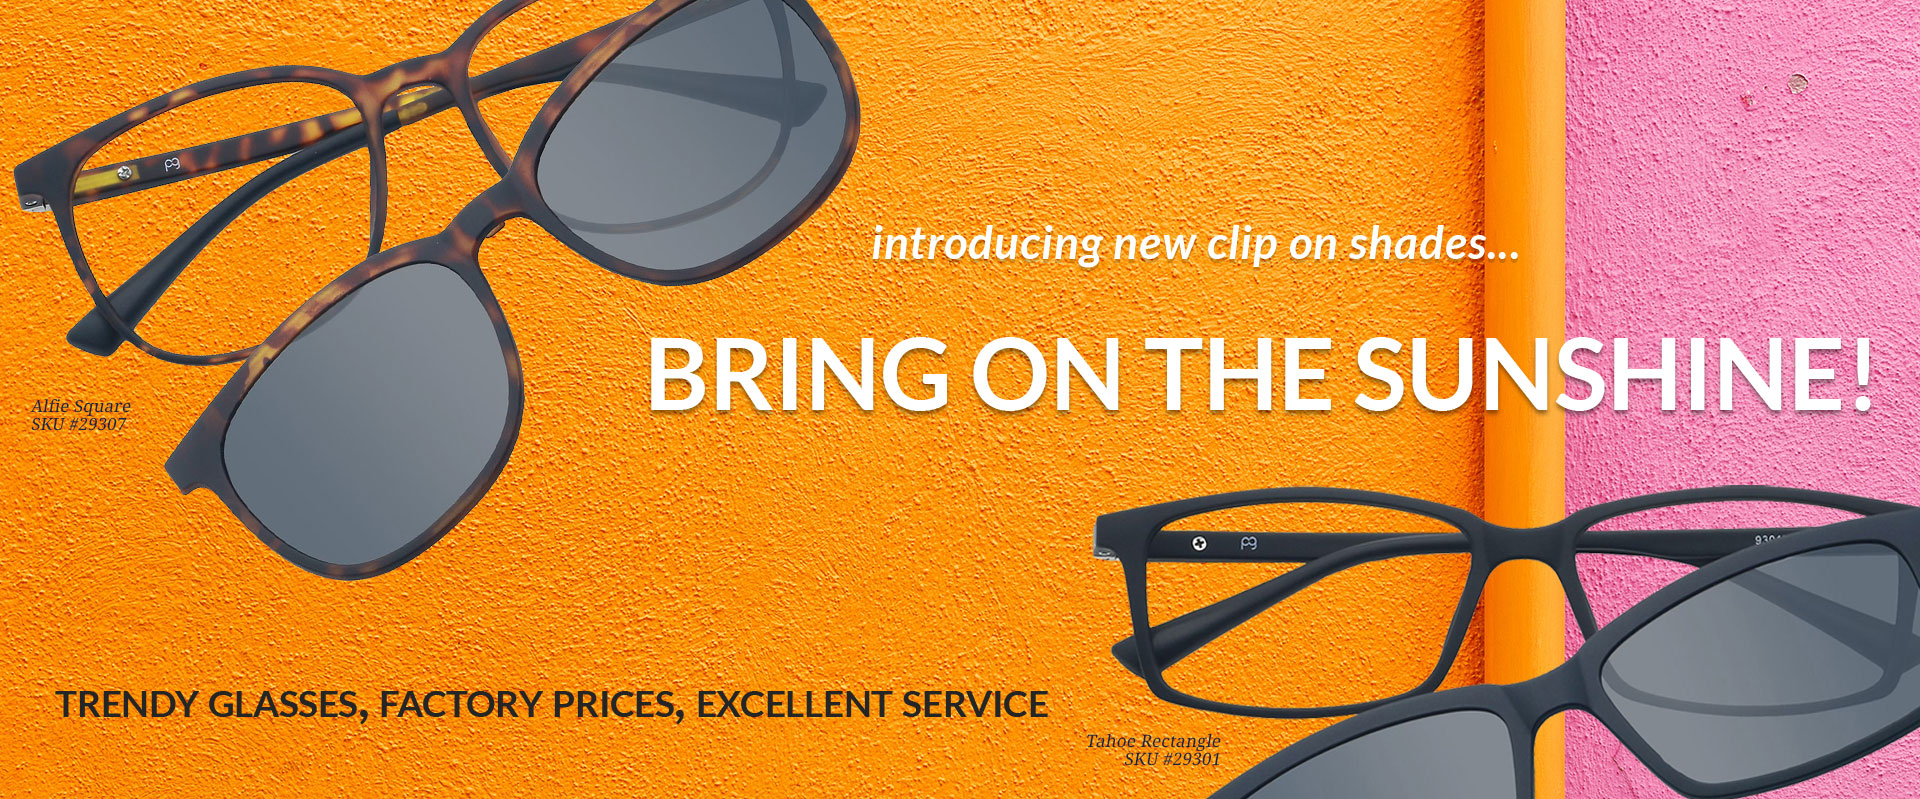 Shop new arrivals and styles at factory prices, only at Payne Glasses!